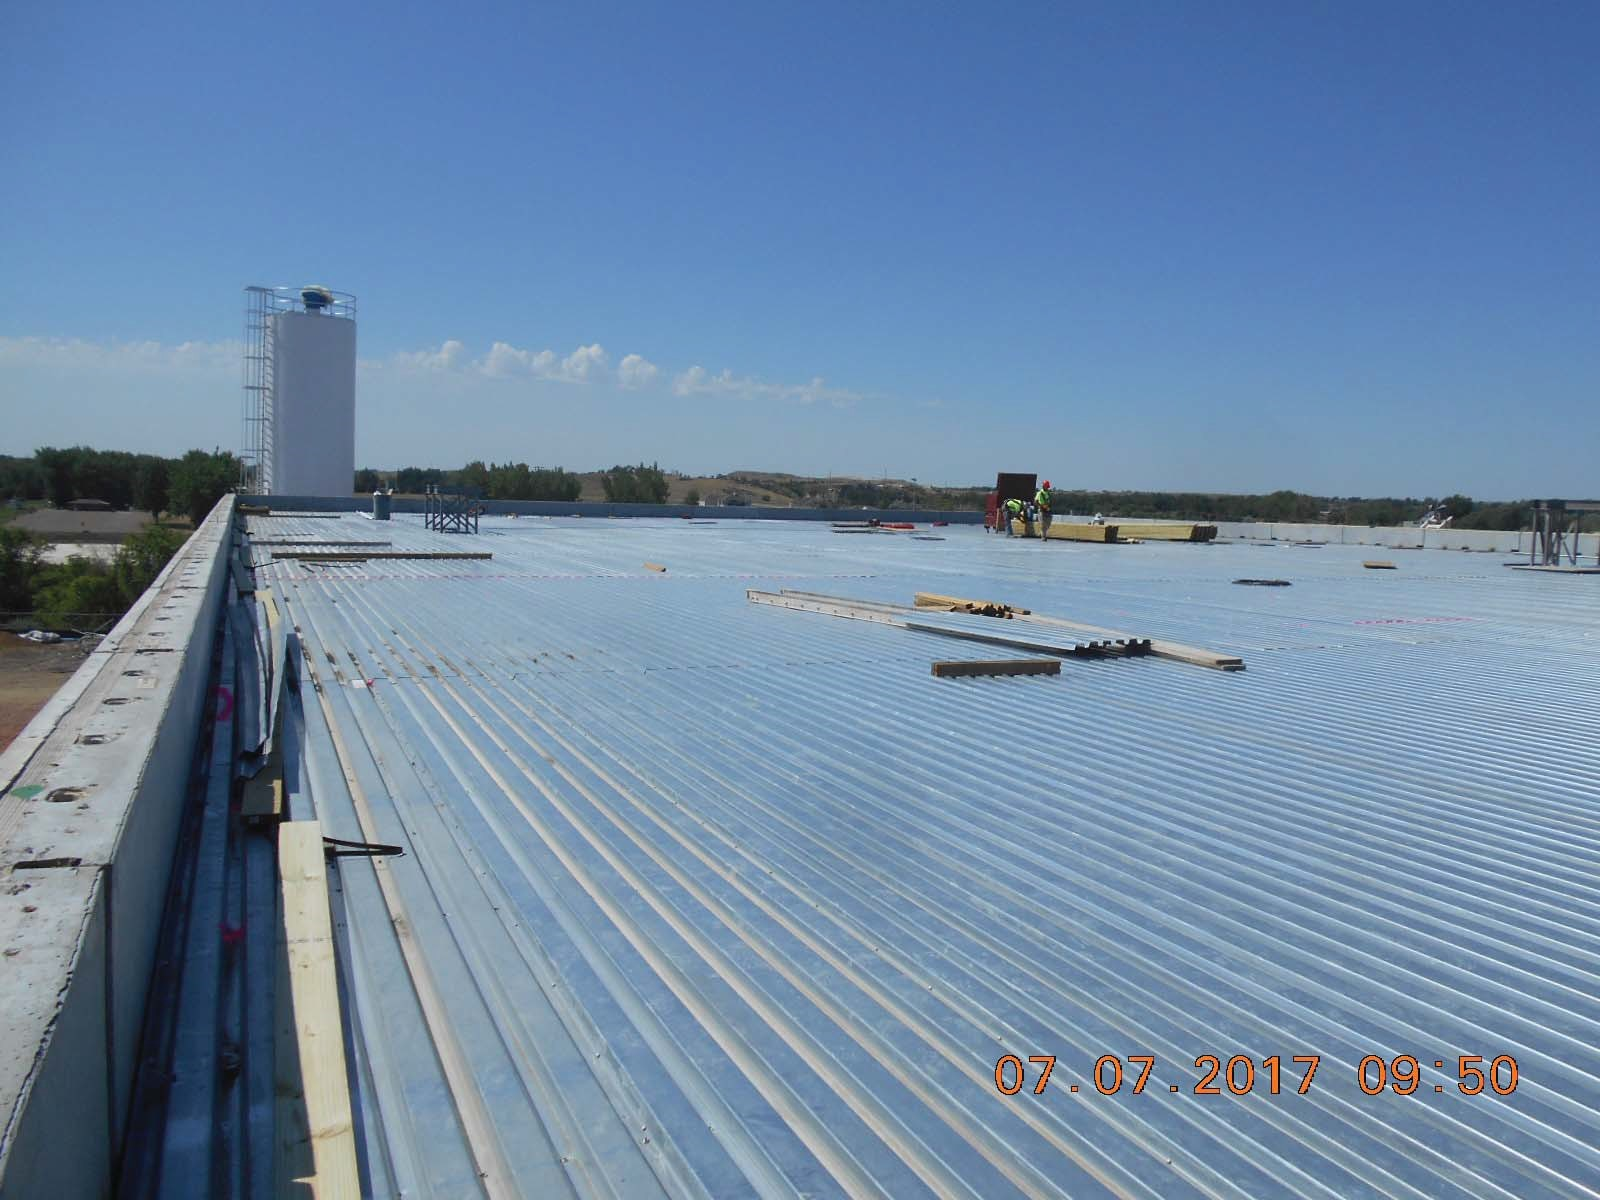 Looking southwest at the completed metal decking for the building roof.